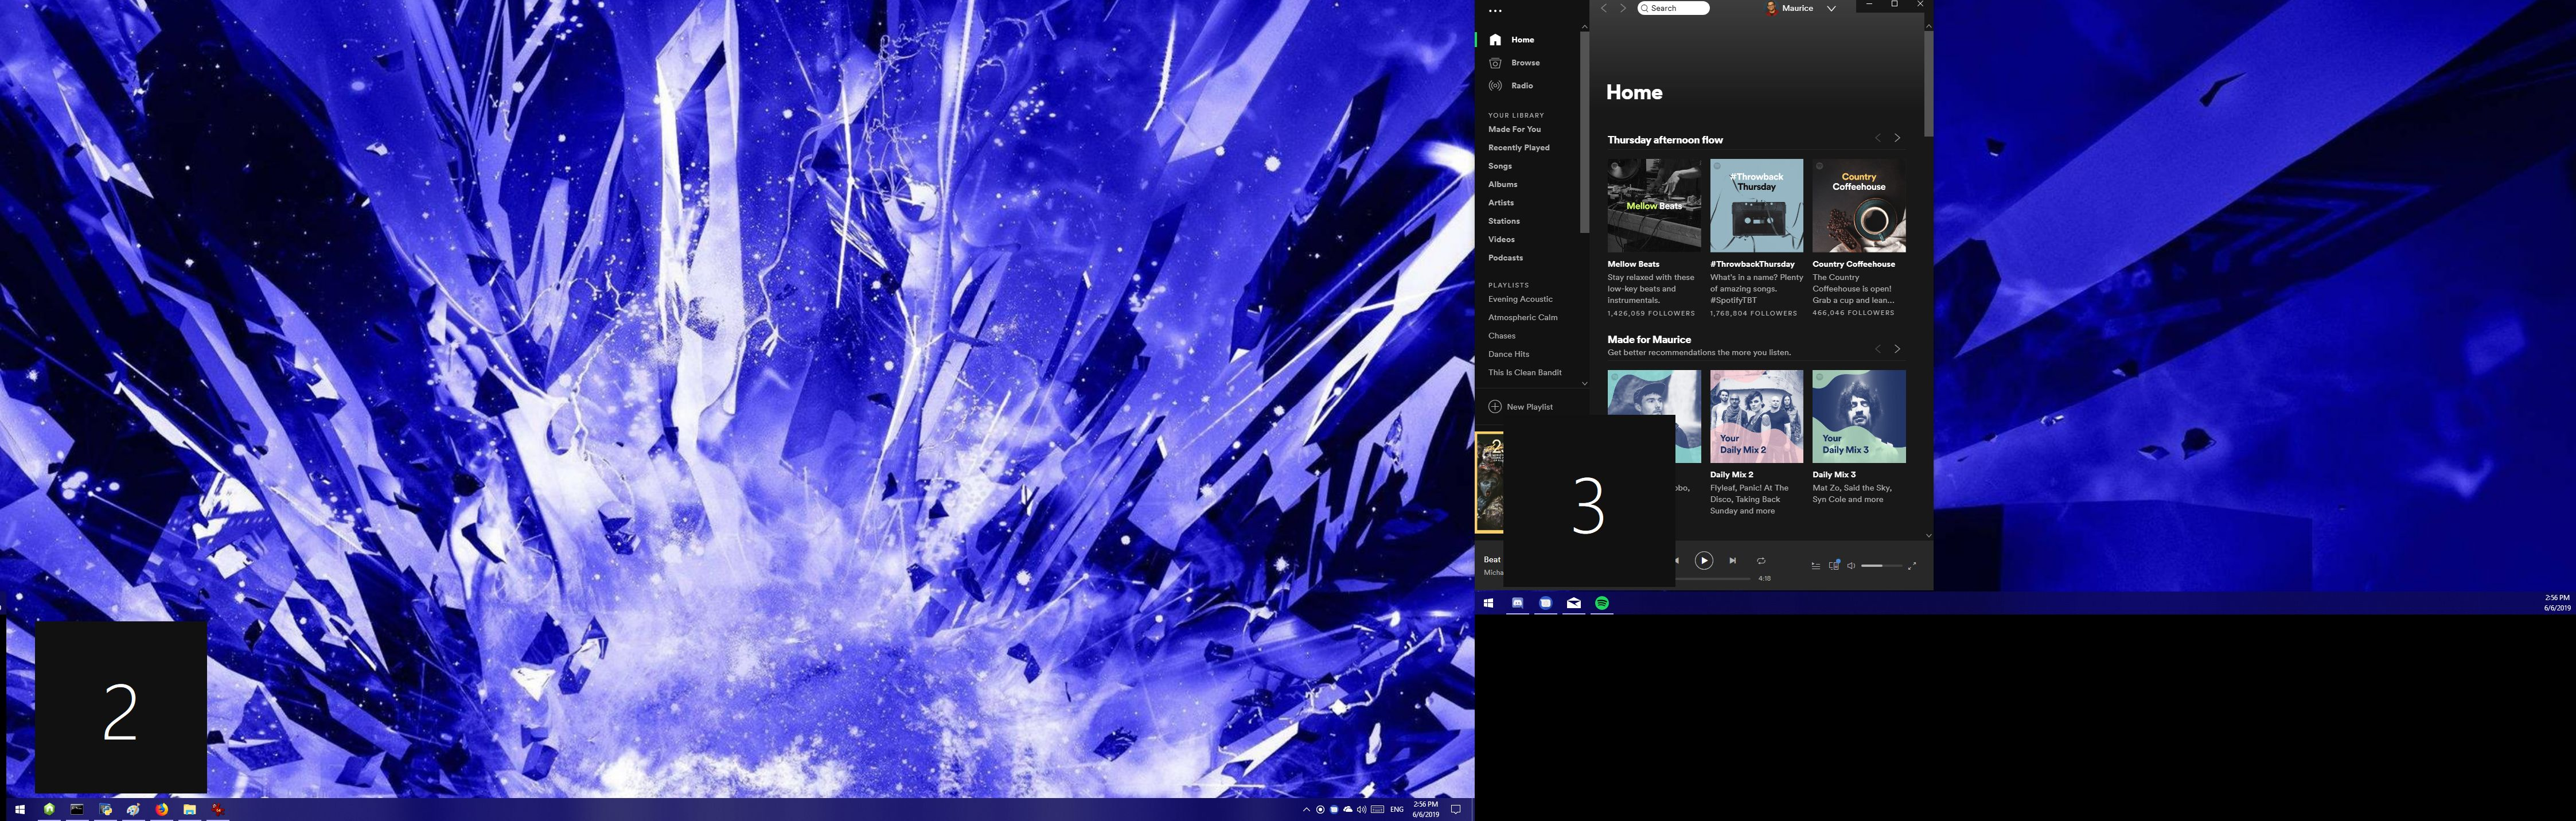 Spotify's taskbar icon on the wrong monitor every     - The